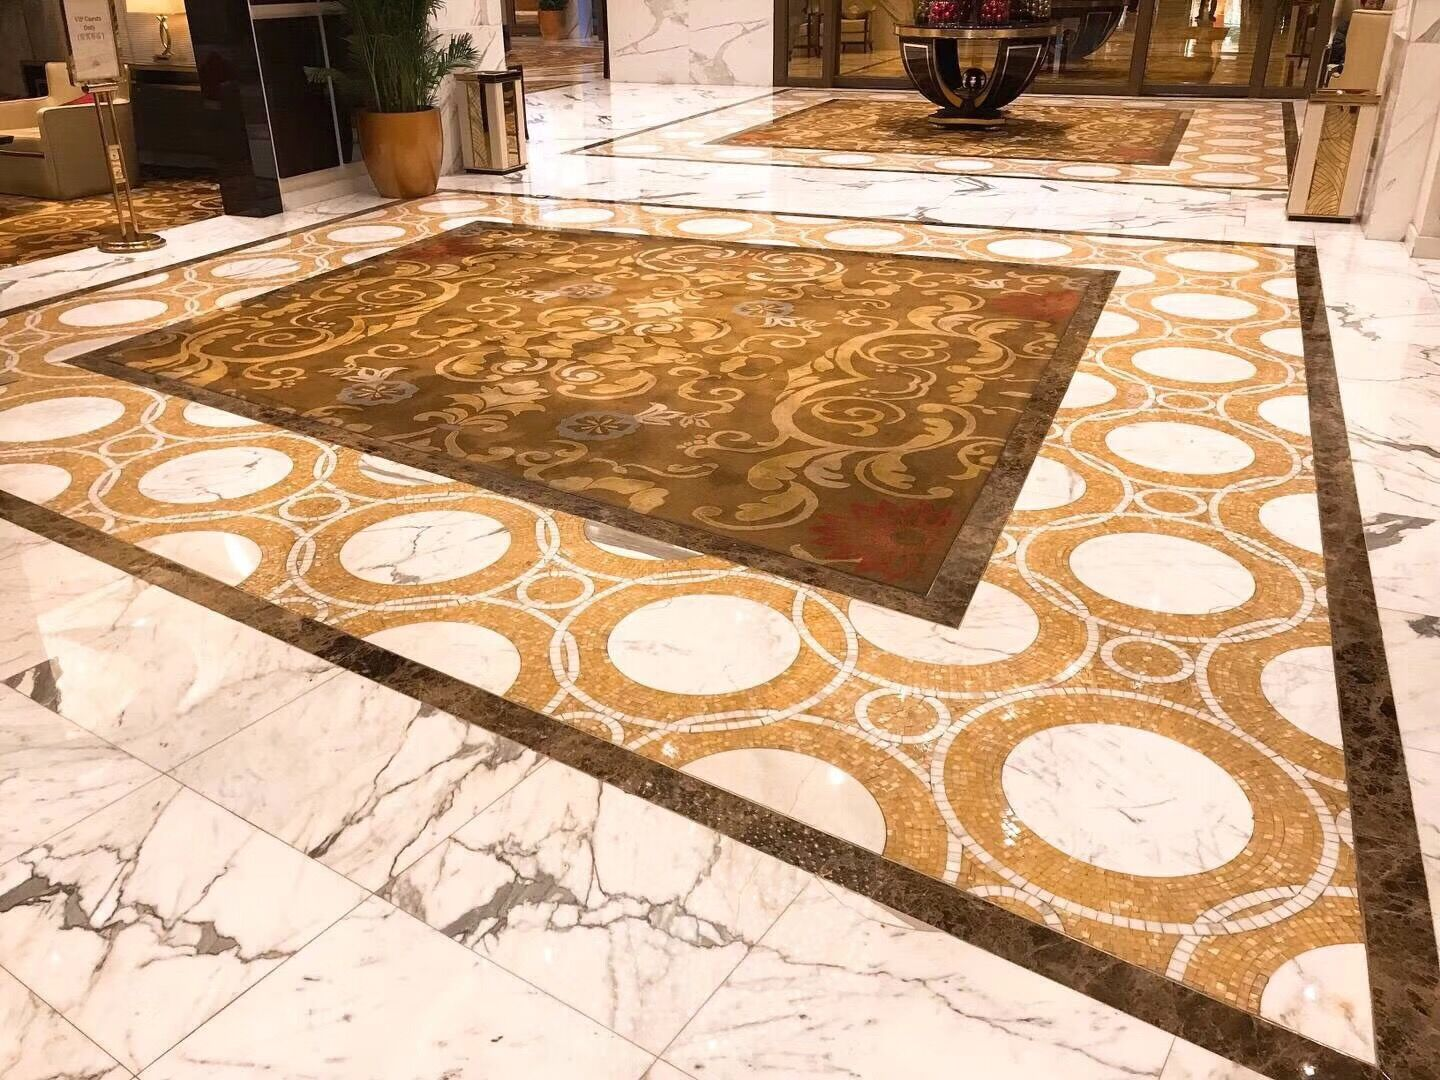 Marble and Shell mosaic pattern